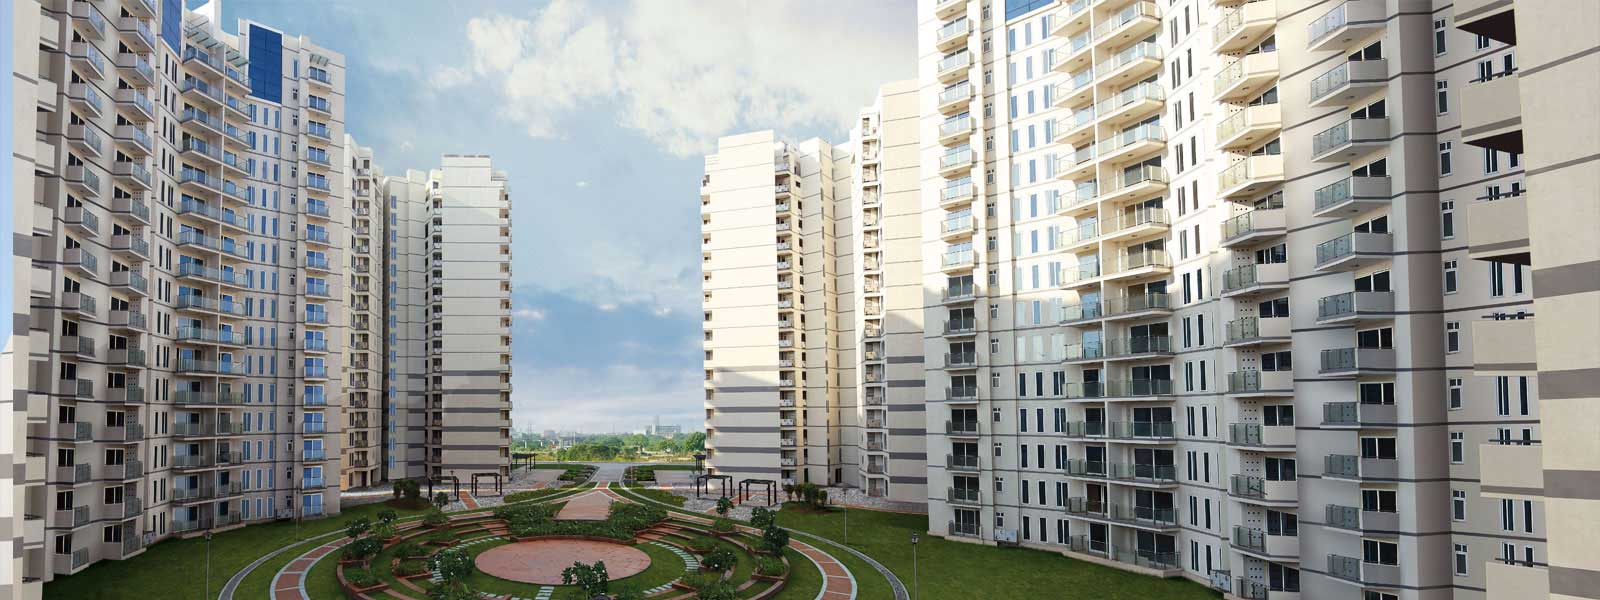 Image of Flats For Sale In Bangalore | Buy Apartment In Bangalore